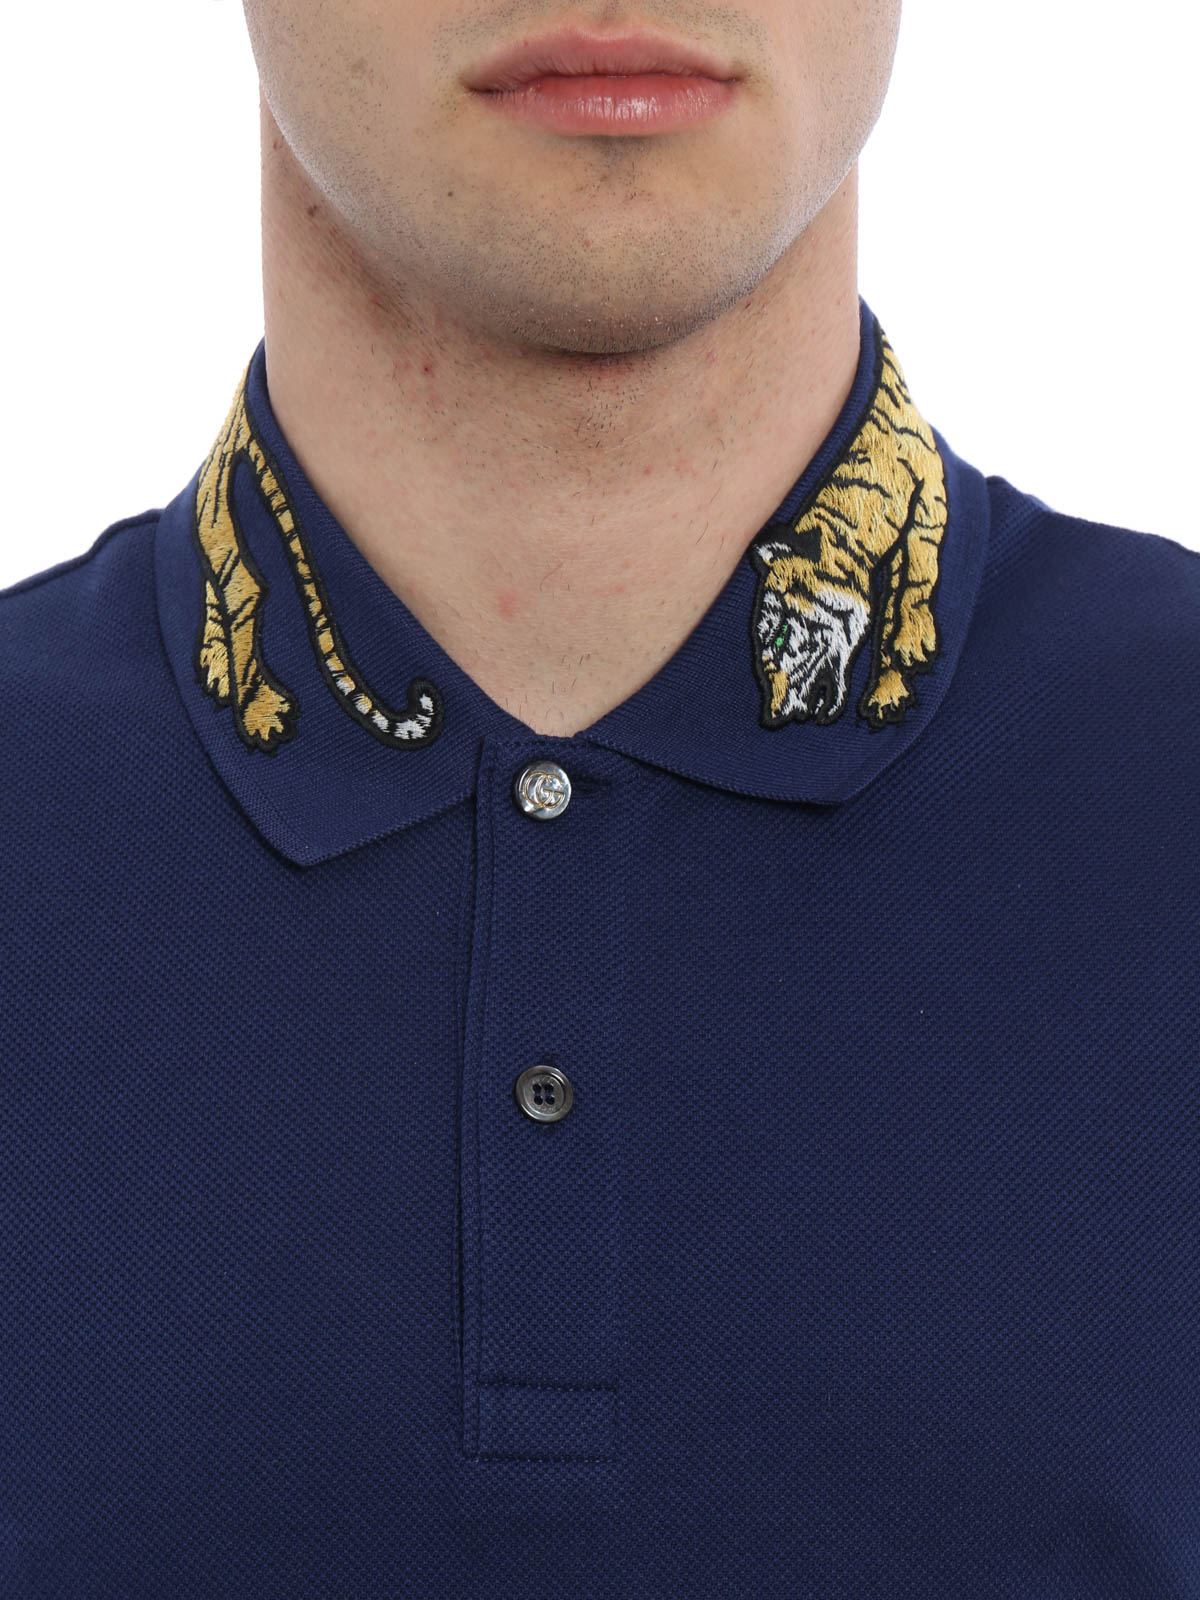 gucci polo. gucci buy online tiger embroidery cotton pique polo